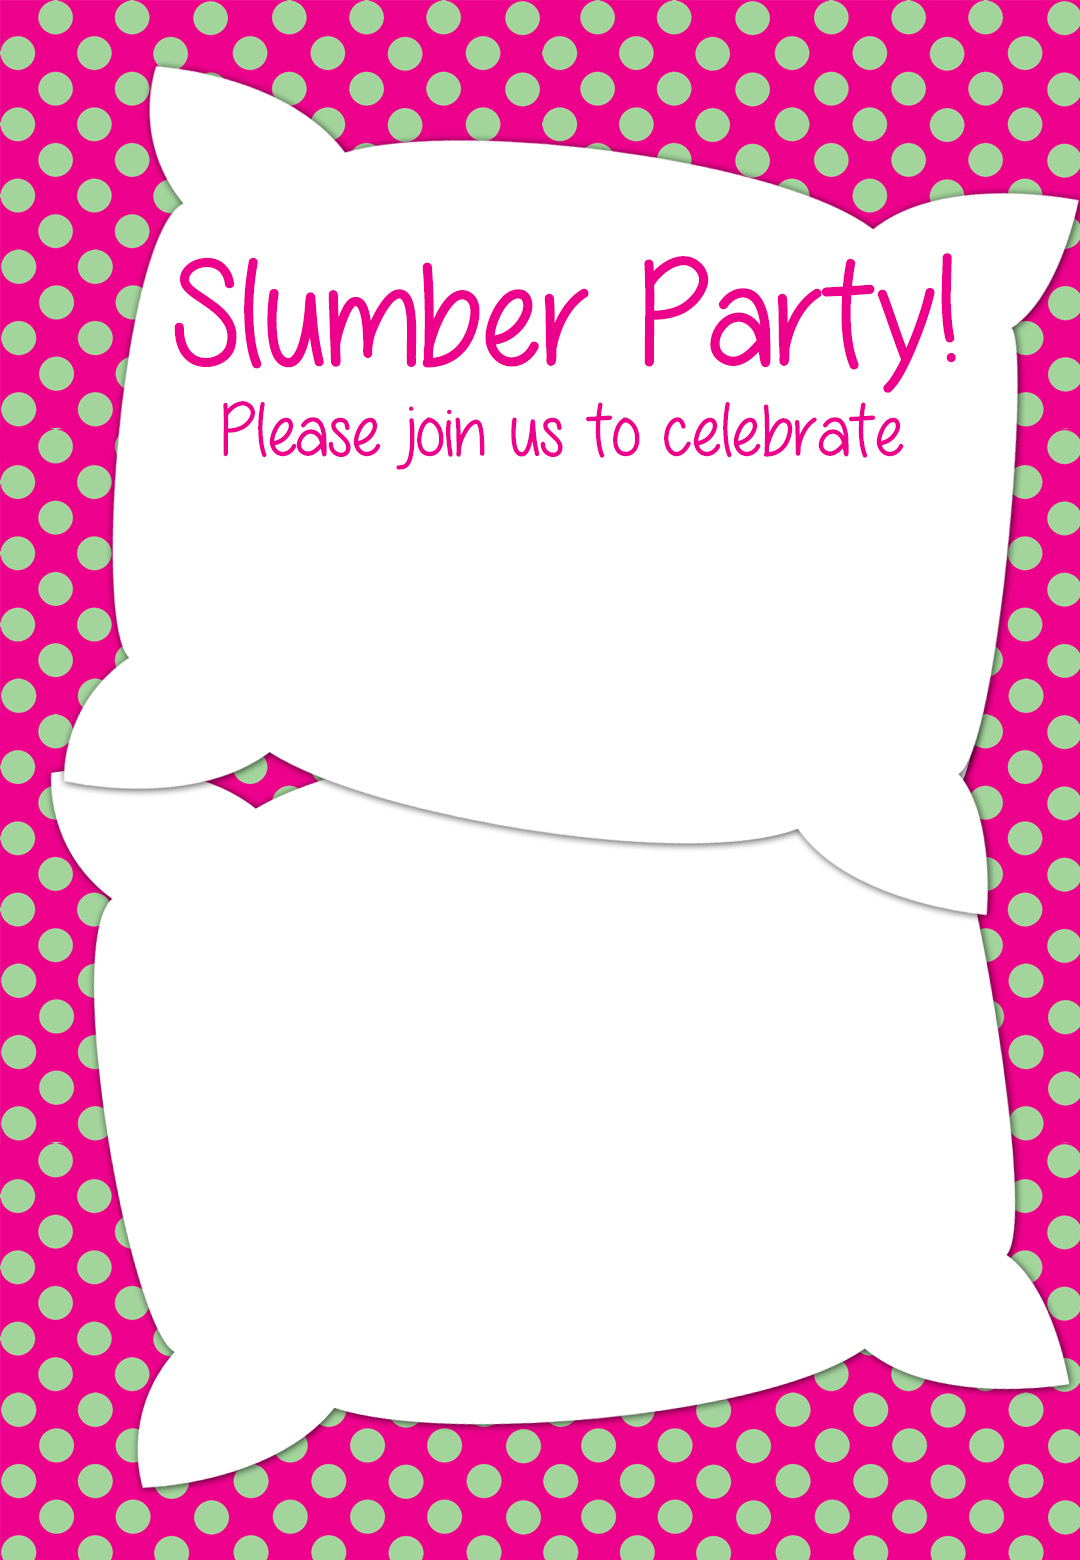 free printable birthday sleepover invitation templates ; printable-sleepover-invitations-in-humorous-page-print